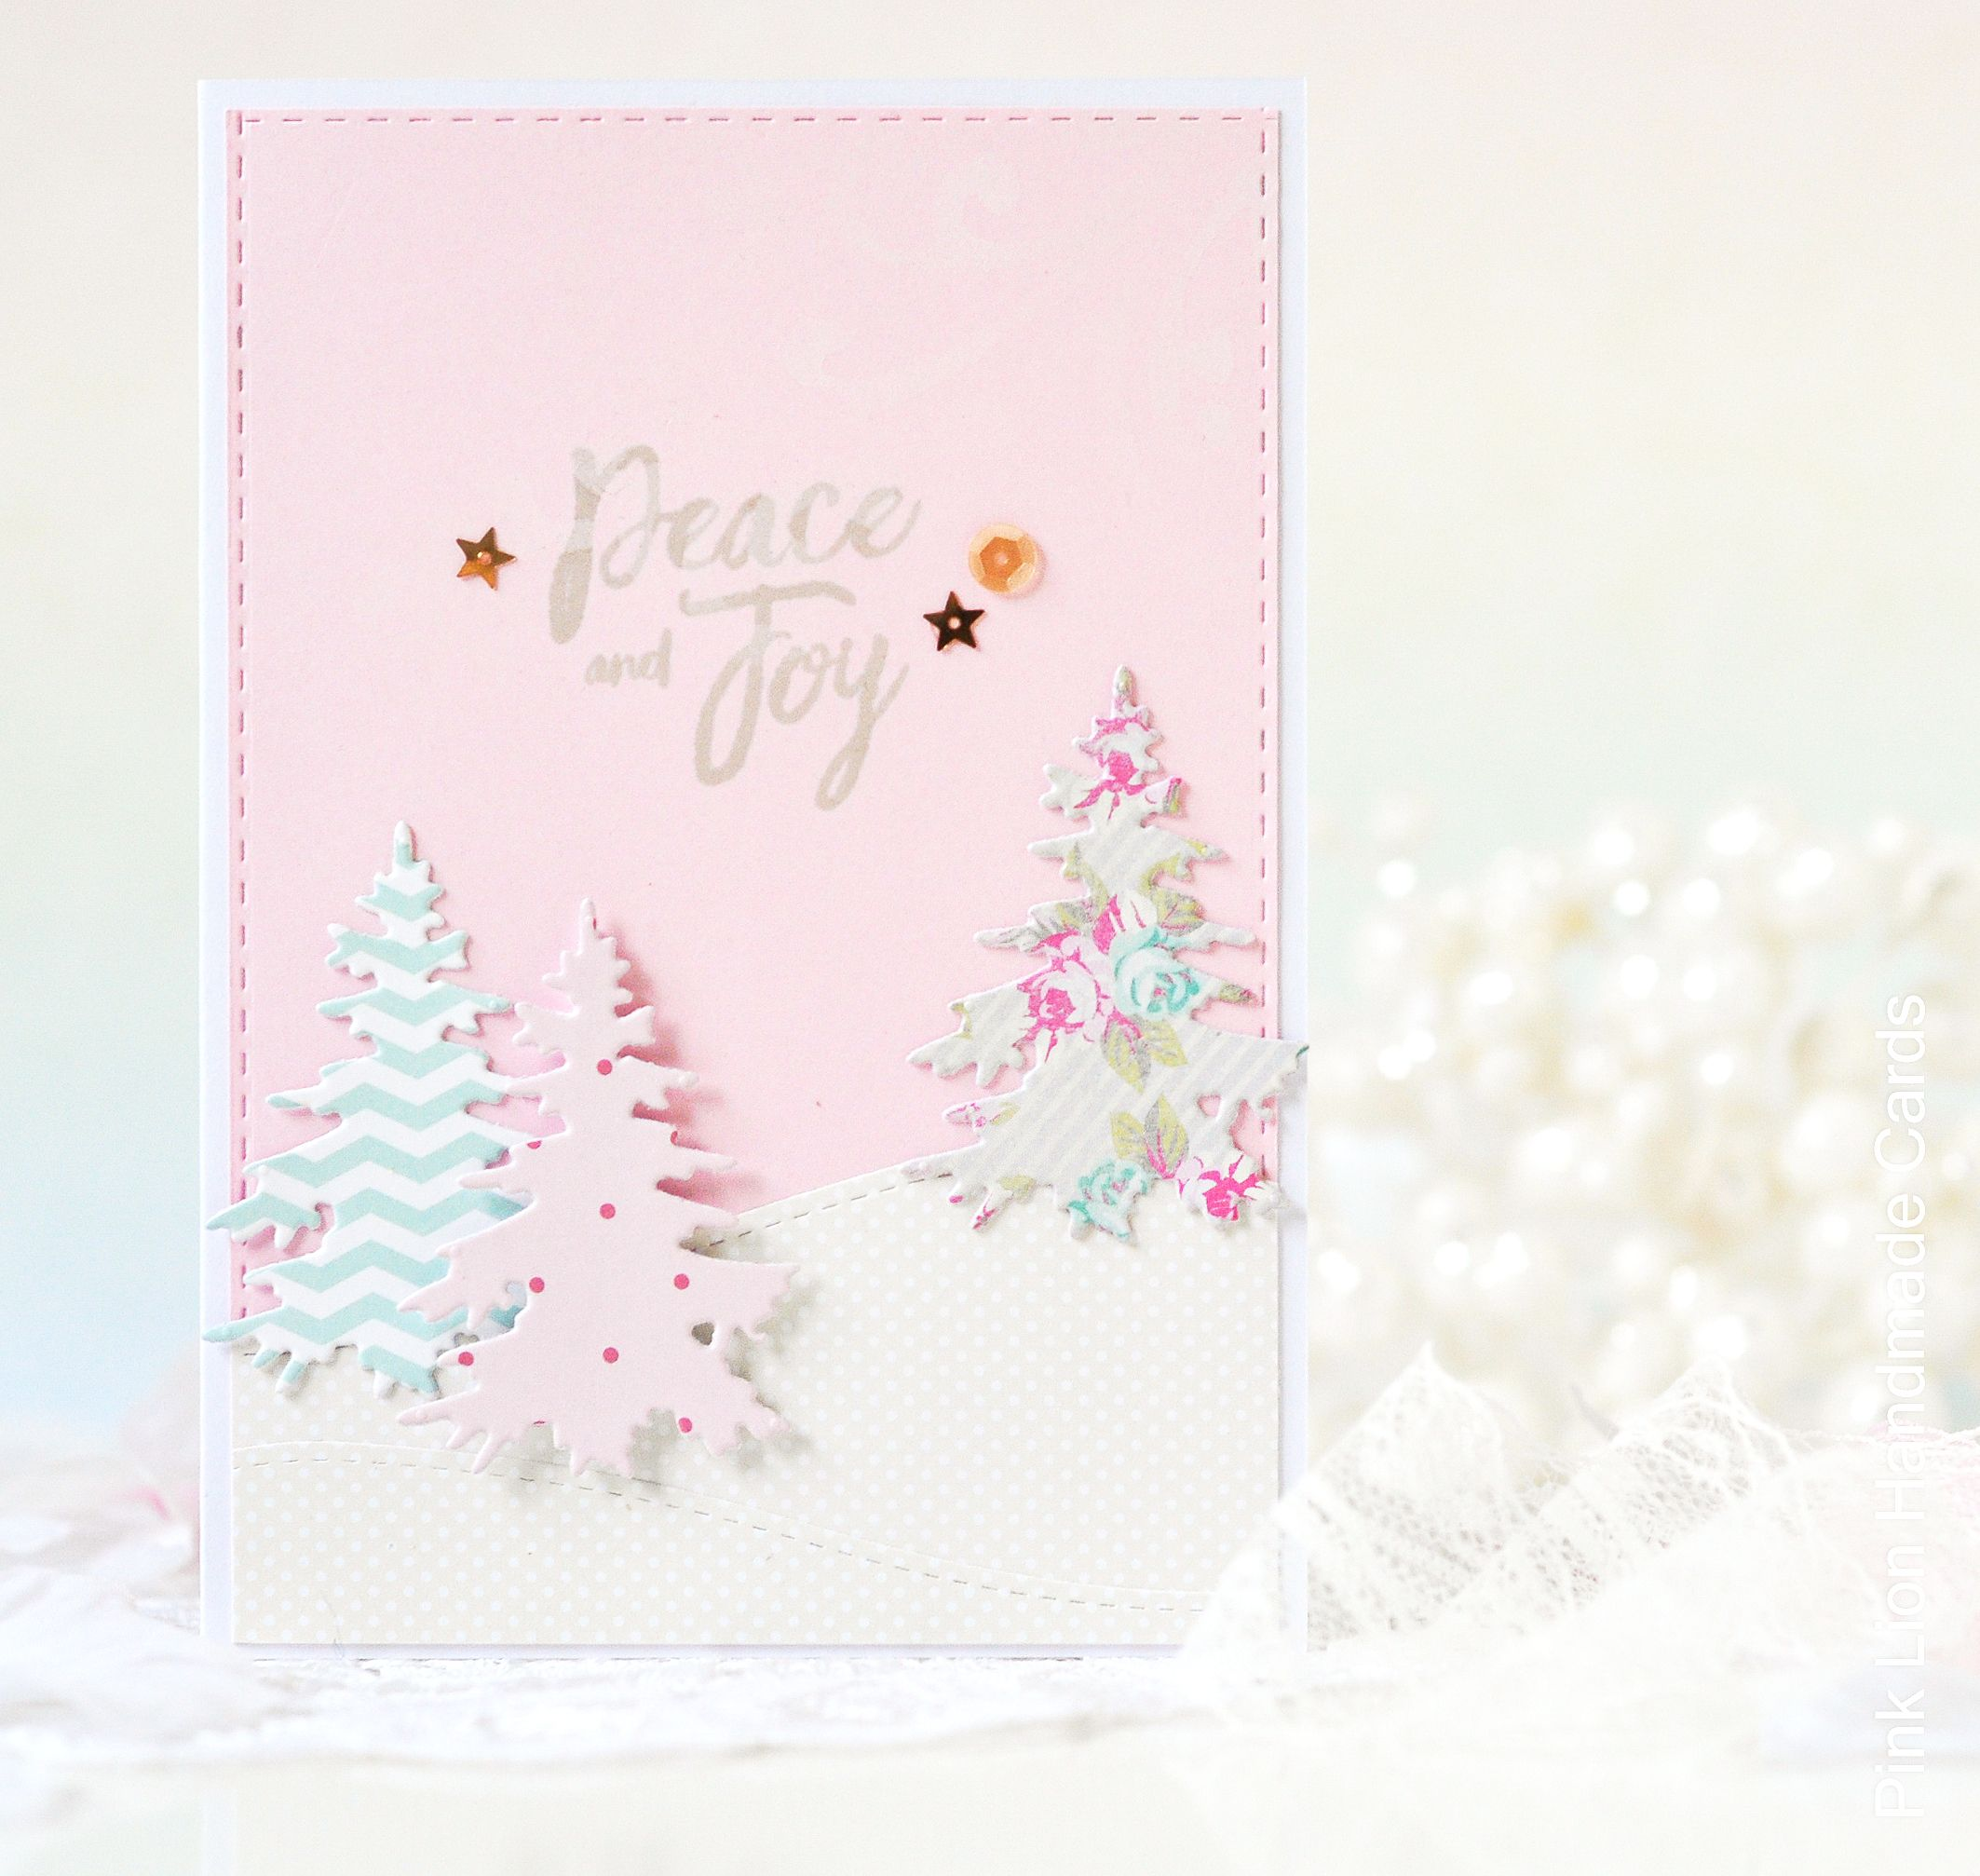 Pin By Candice Fisher On Christmas Cards Pinterest Christmas